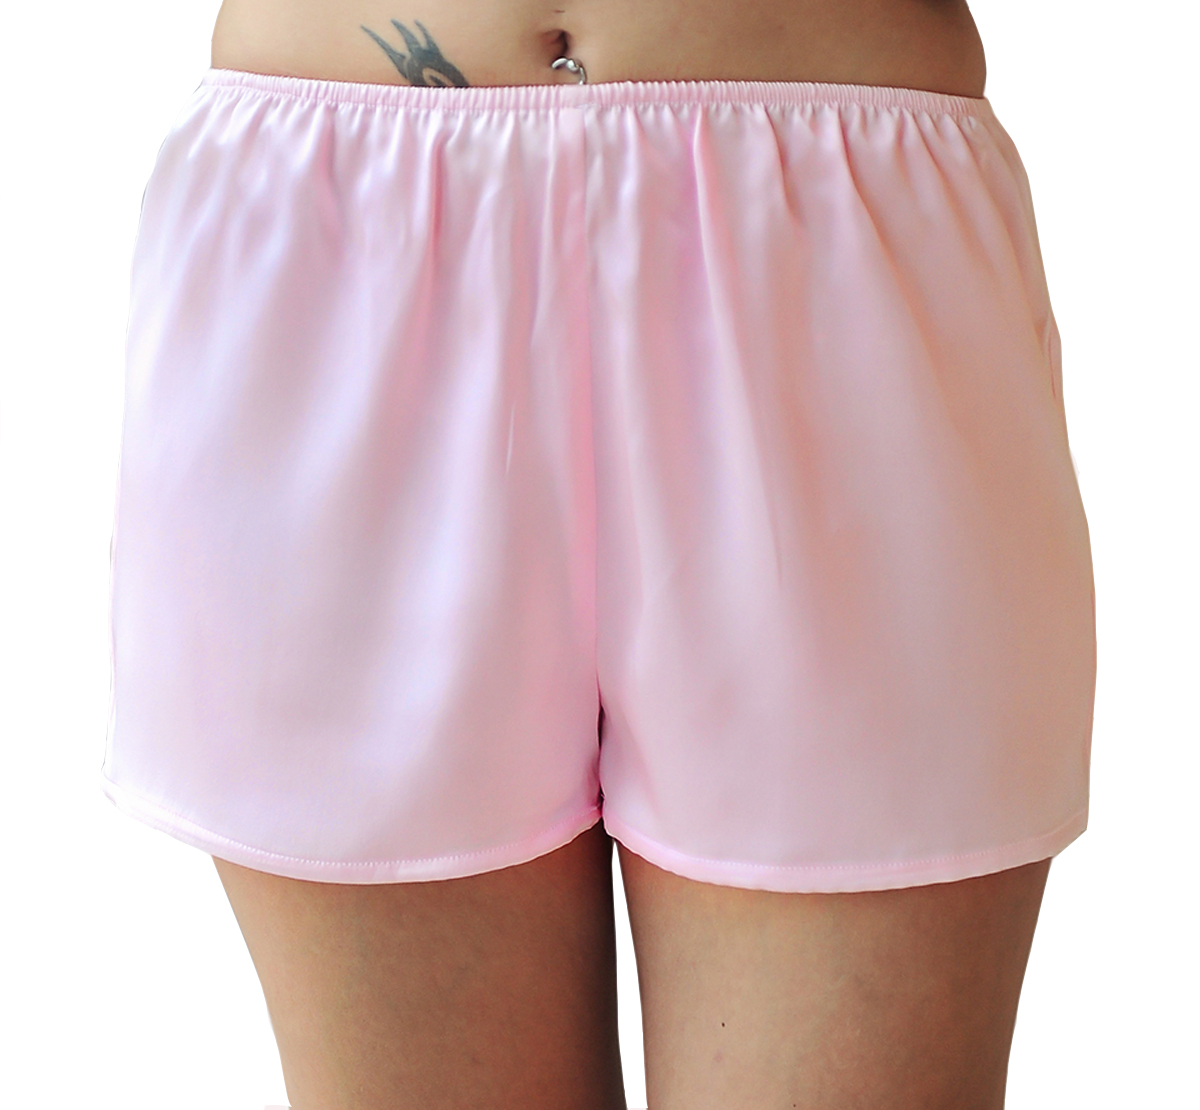 Pajama Shorts -- Women's Boxer Shorts. Our selection of women's boxer shorts include lightweight poplin cotton pajama shorts. Our licensed pajama shorts include Betty Boop and the Pink Panther. Our Betty Boop and Pink Panther pajama shorts are cut for juniors, which means that they run .